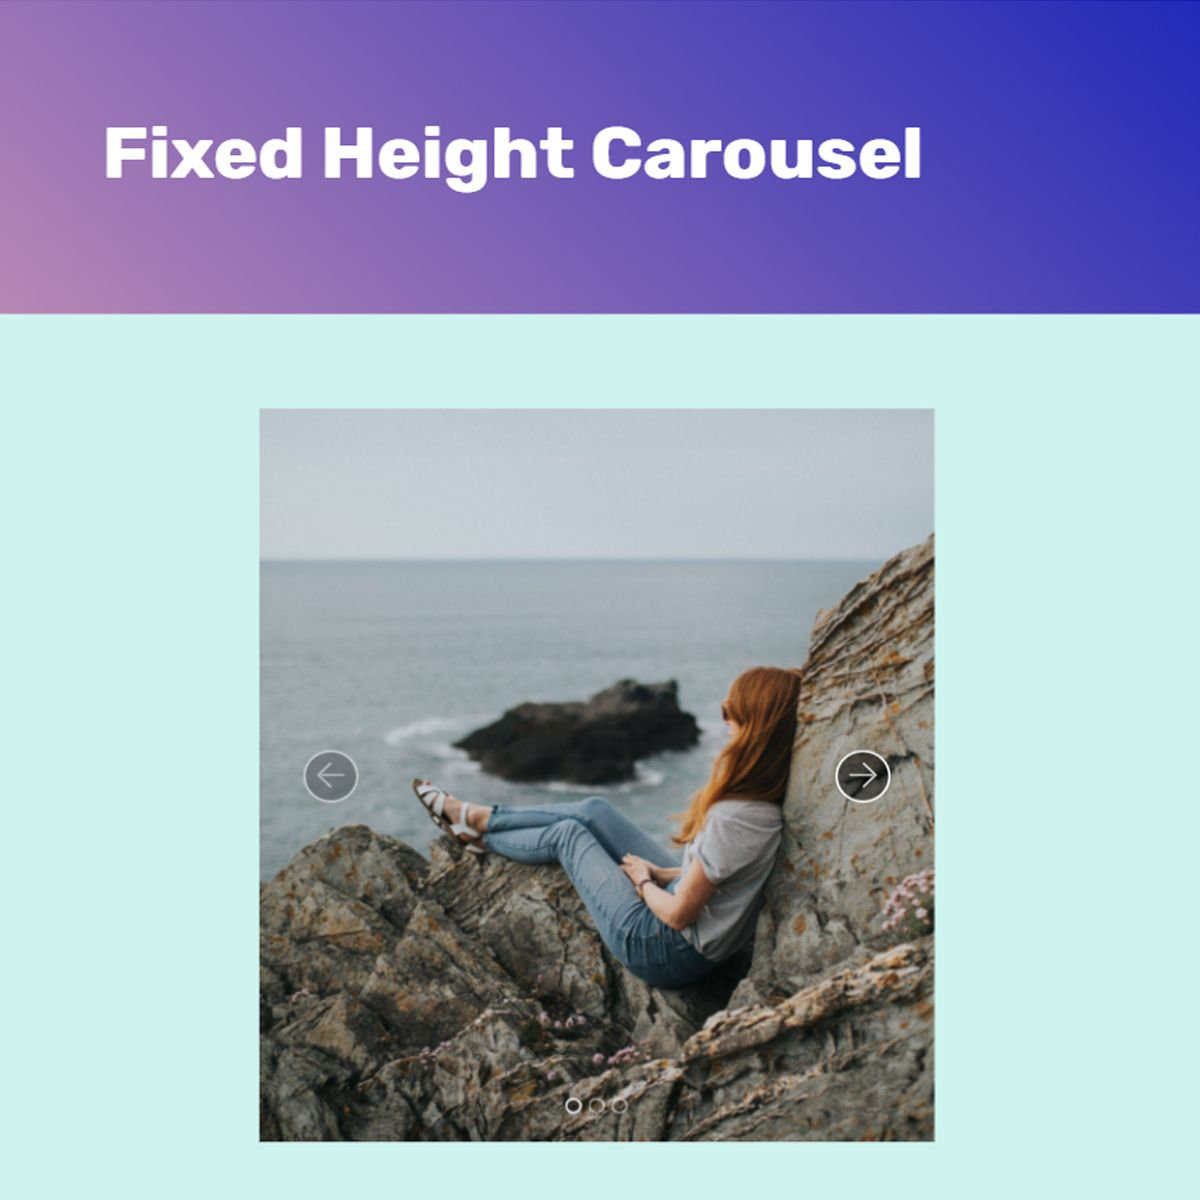 Free Bootstrap Image Carousel